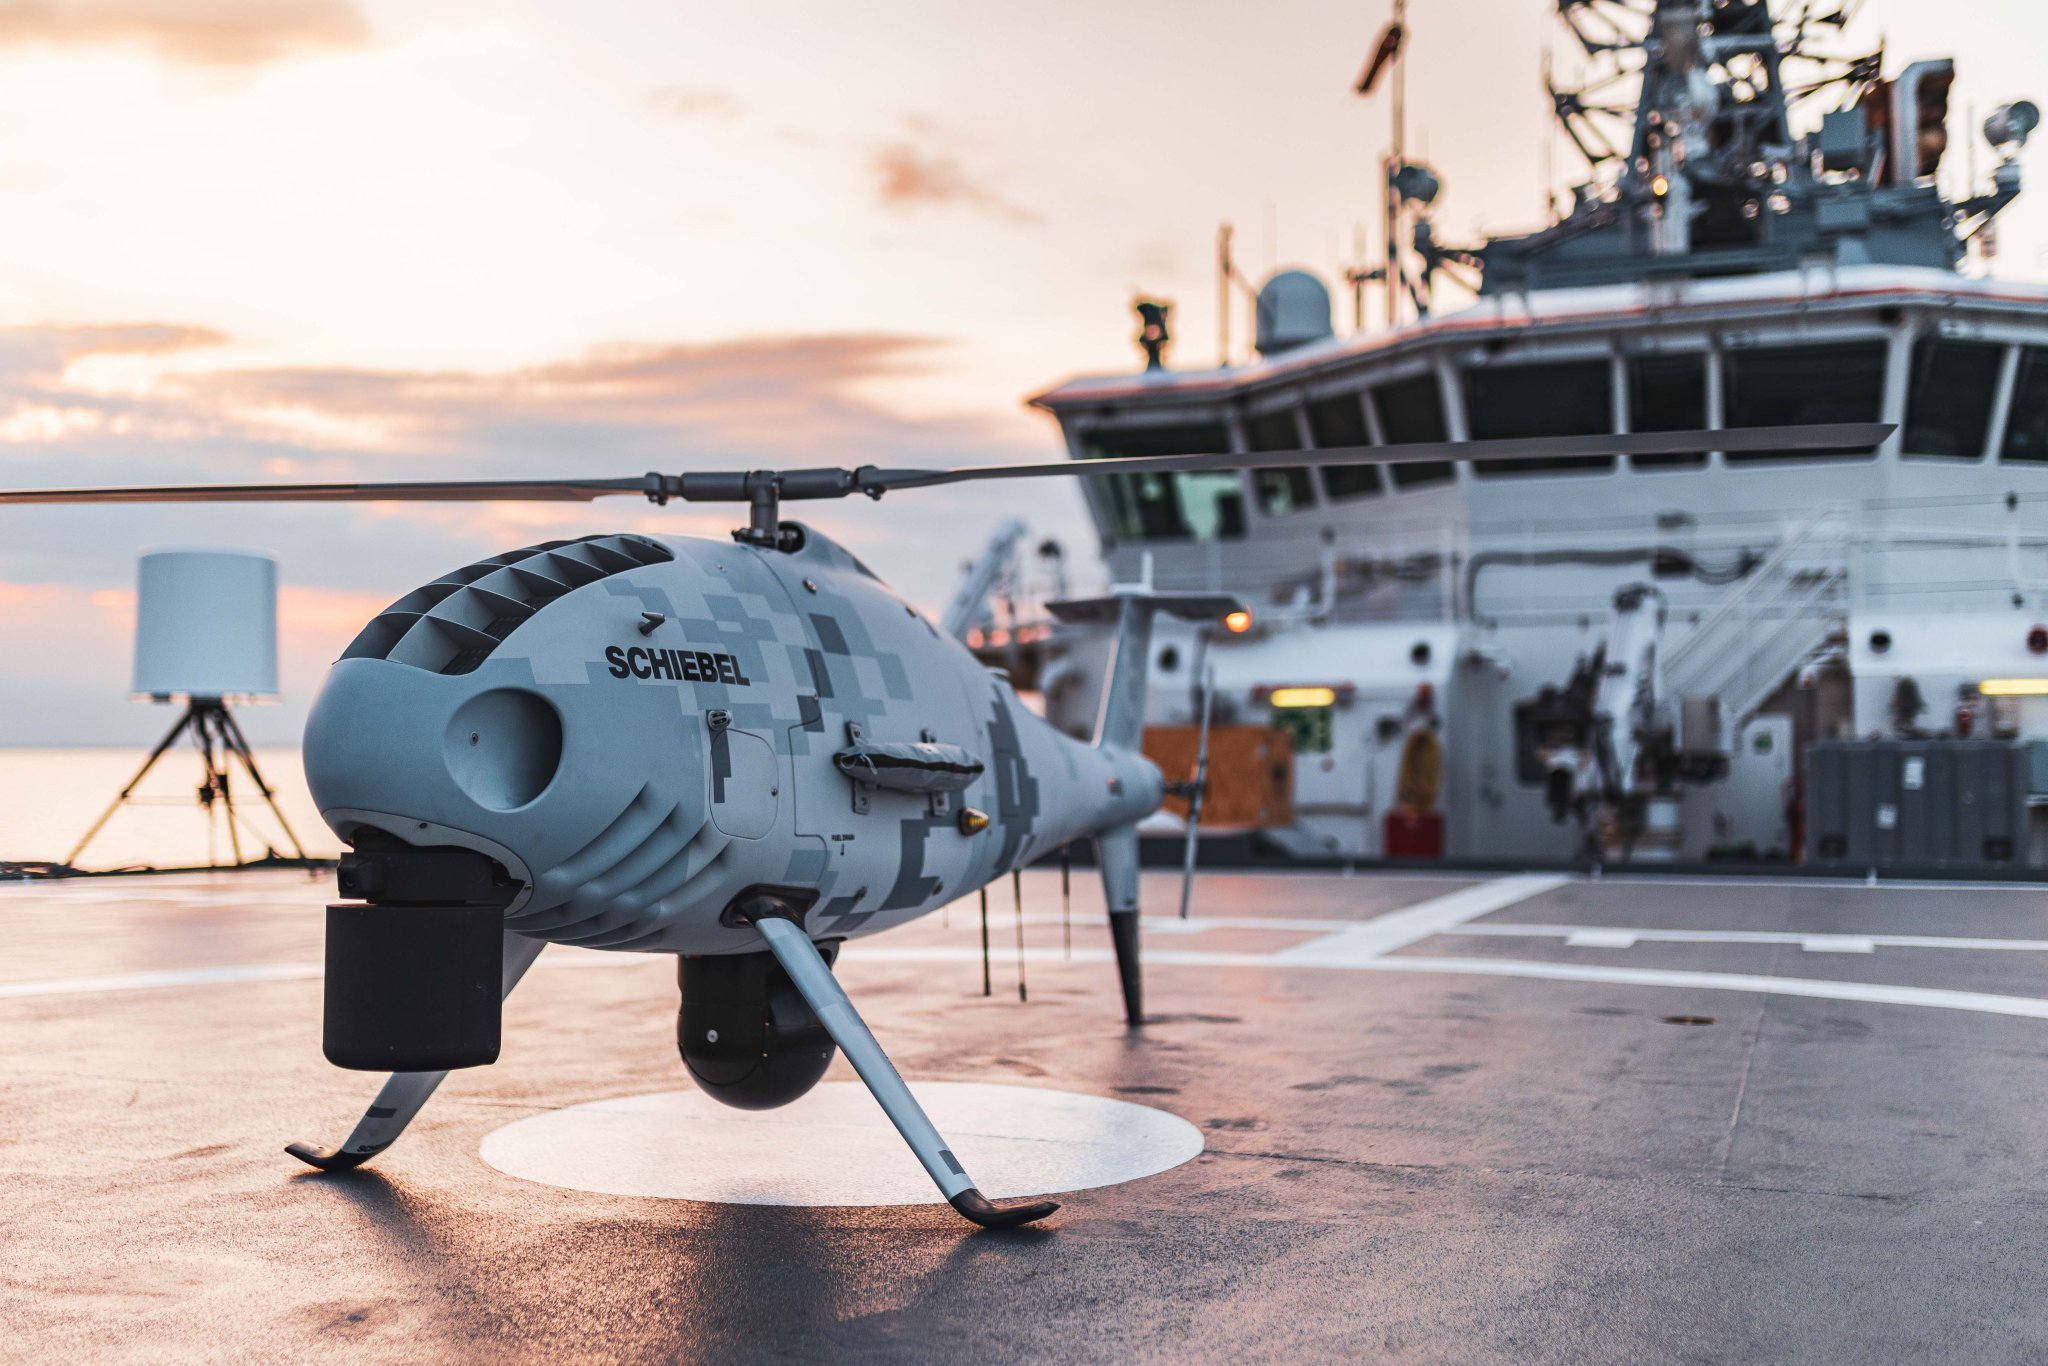 Schiebel Camcopter S-100 onboard Finnish Border Guard's Turva OPV